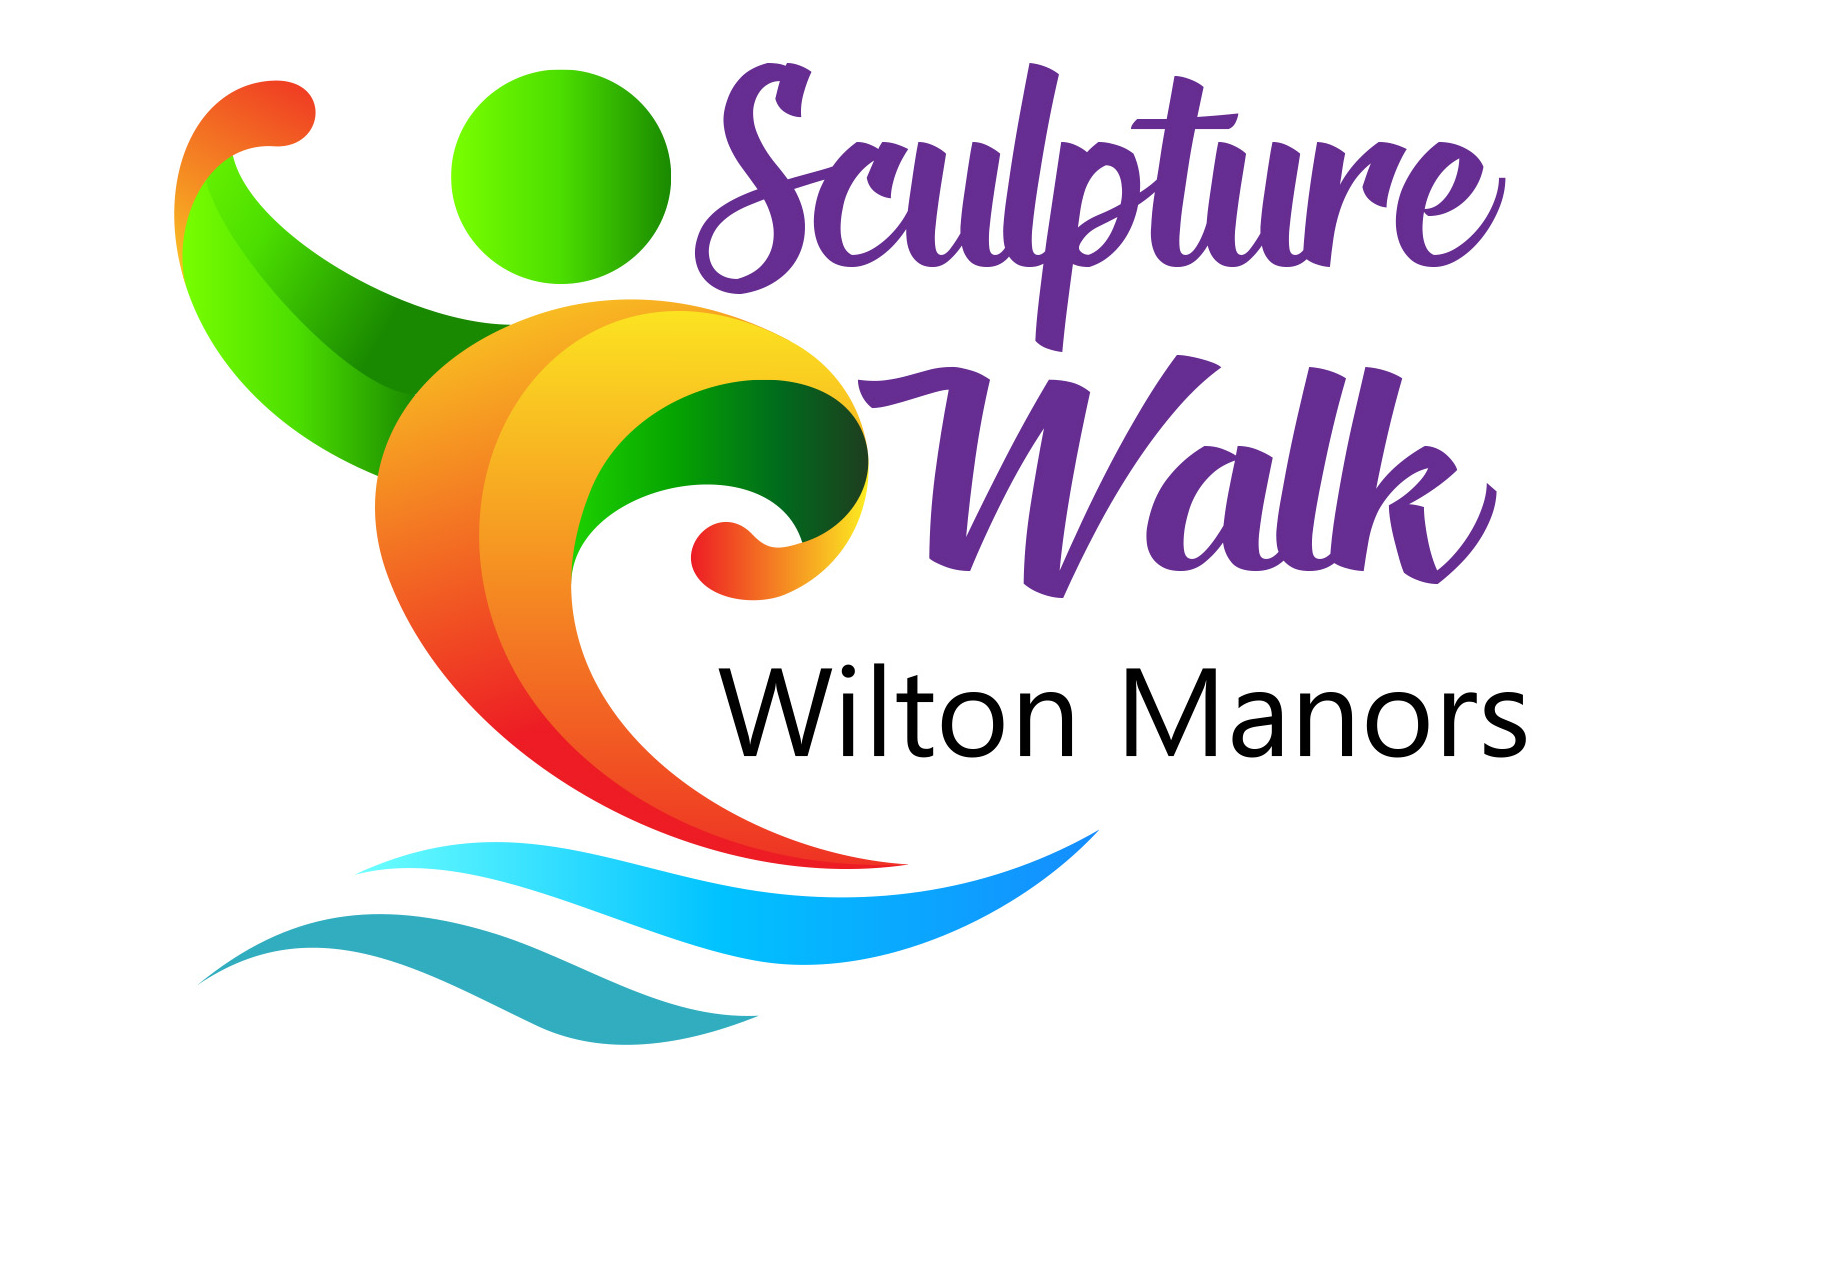 logo Sculpture Walkjpg